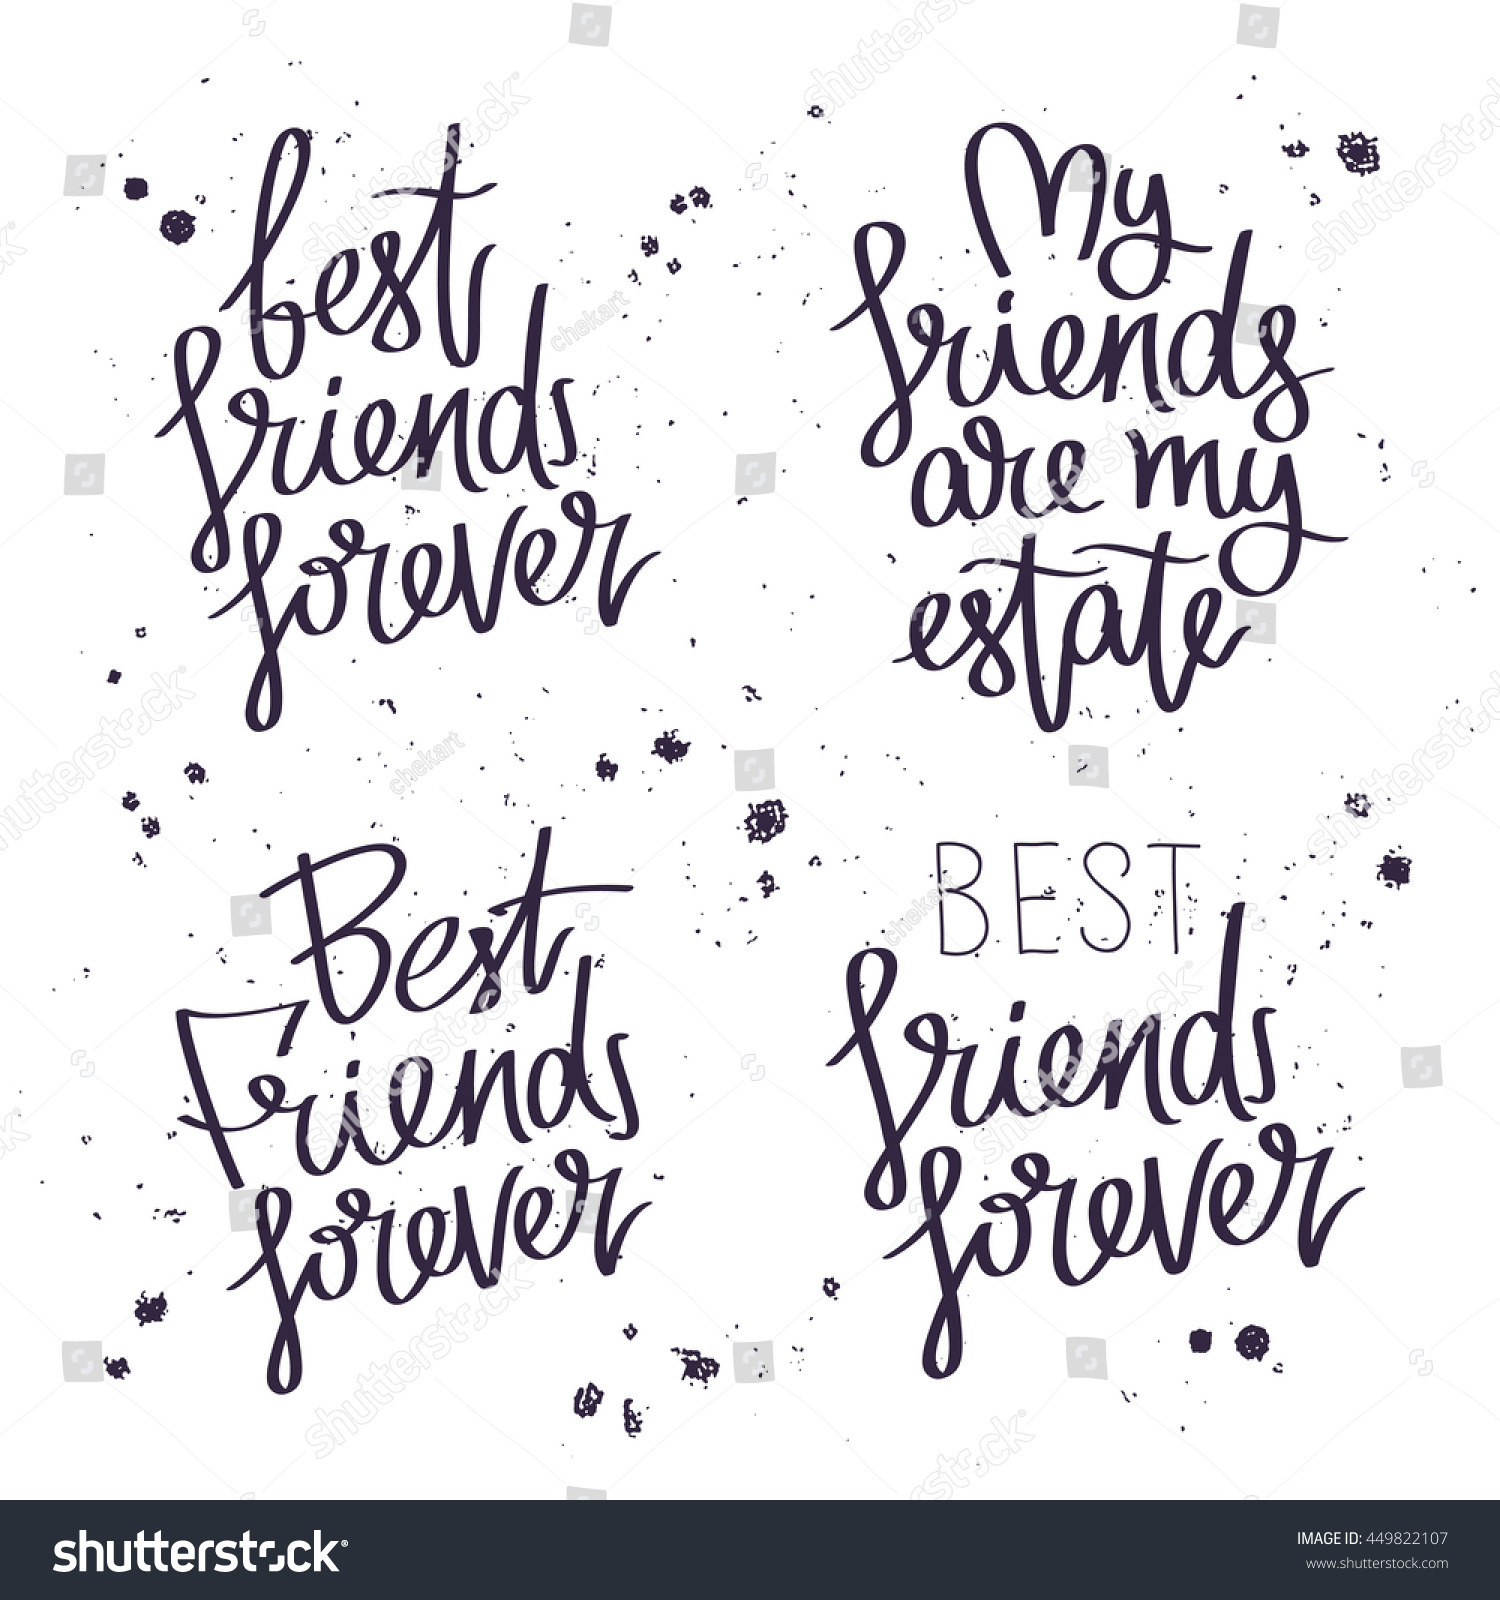 Friends Forever Quotes Best Friends Forever Trend Calligraphy Vector Stock Vector